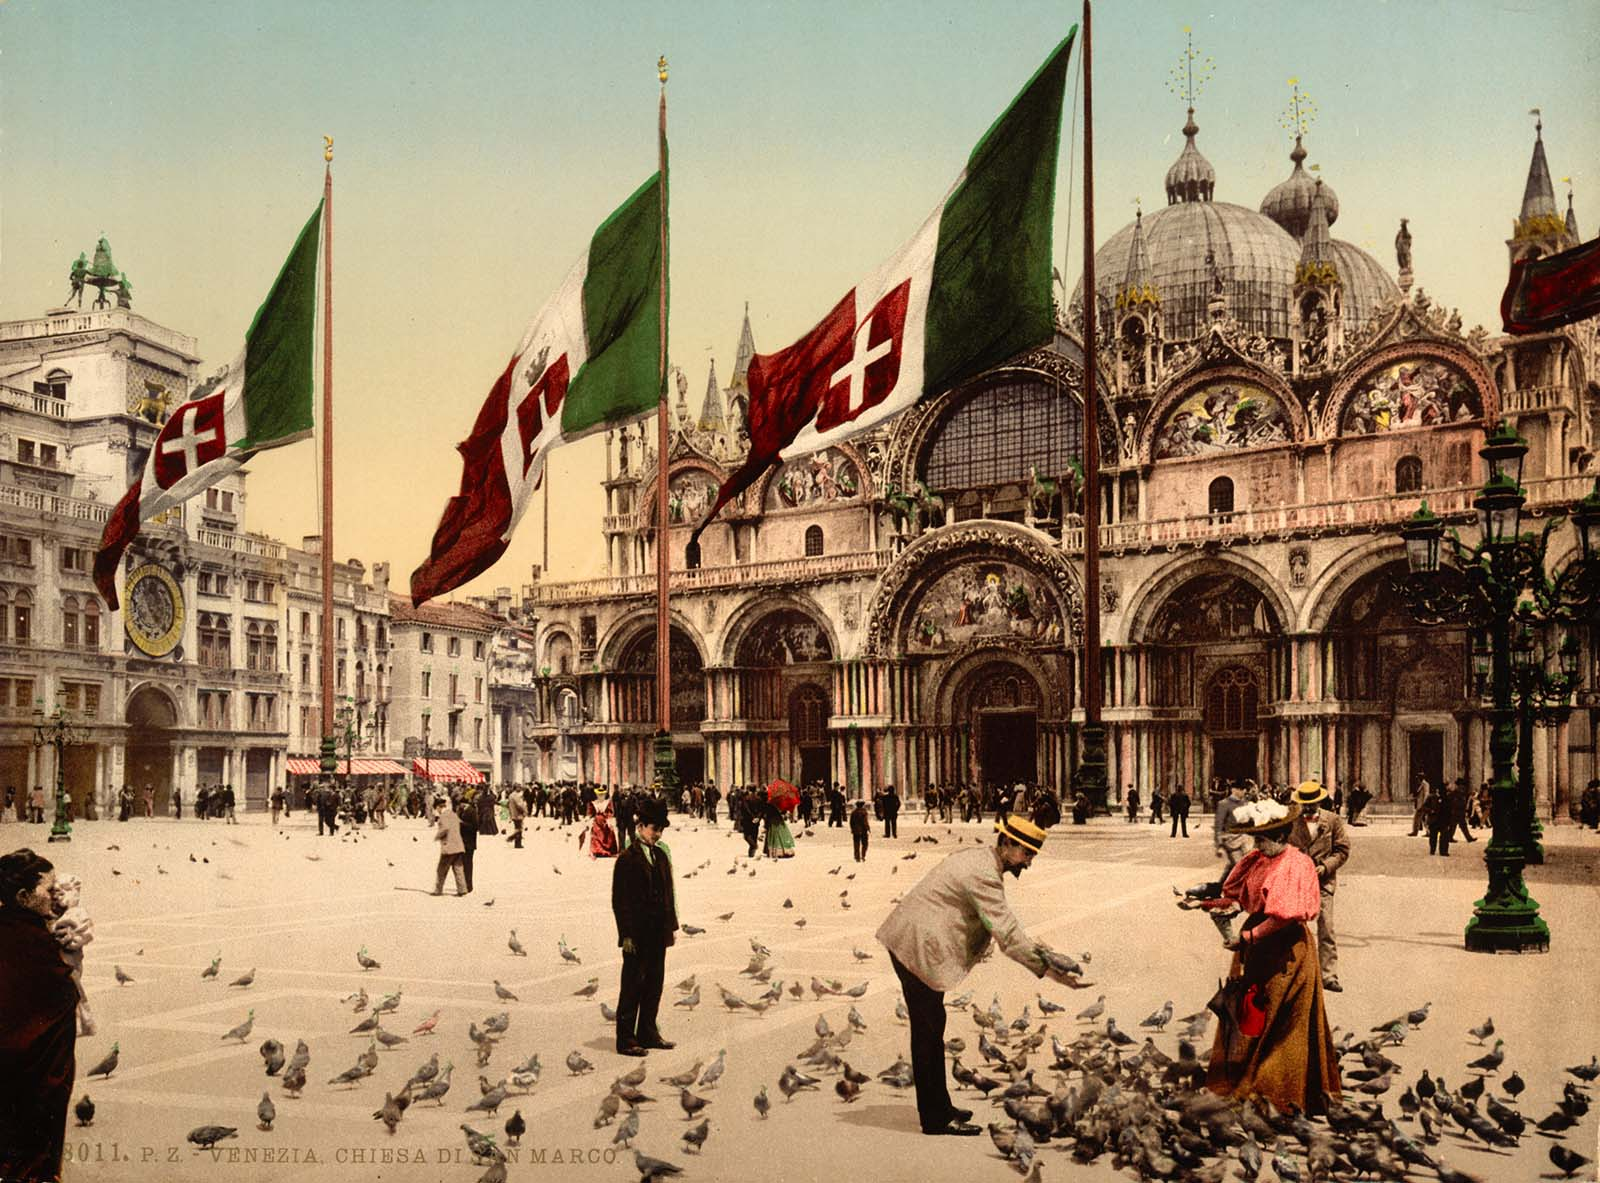 A scene of pigeon-feeding in St. Mark's Piazza.